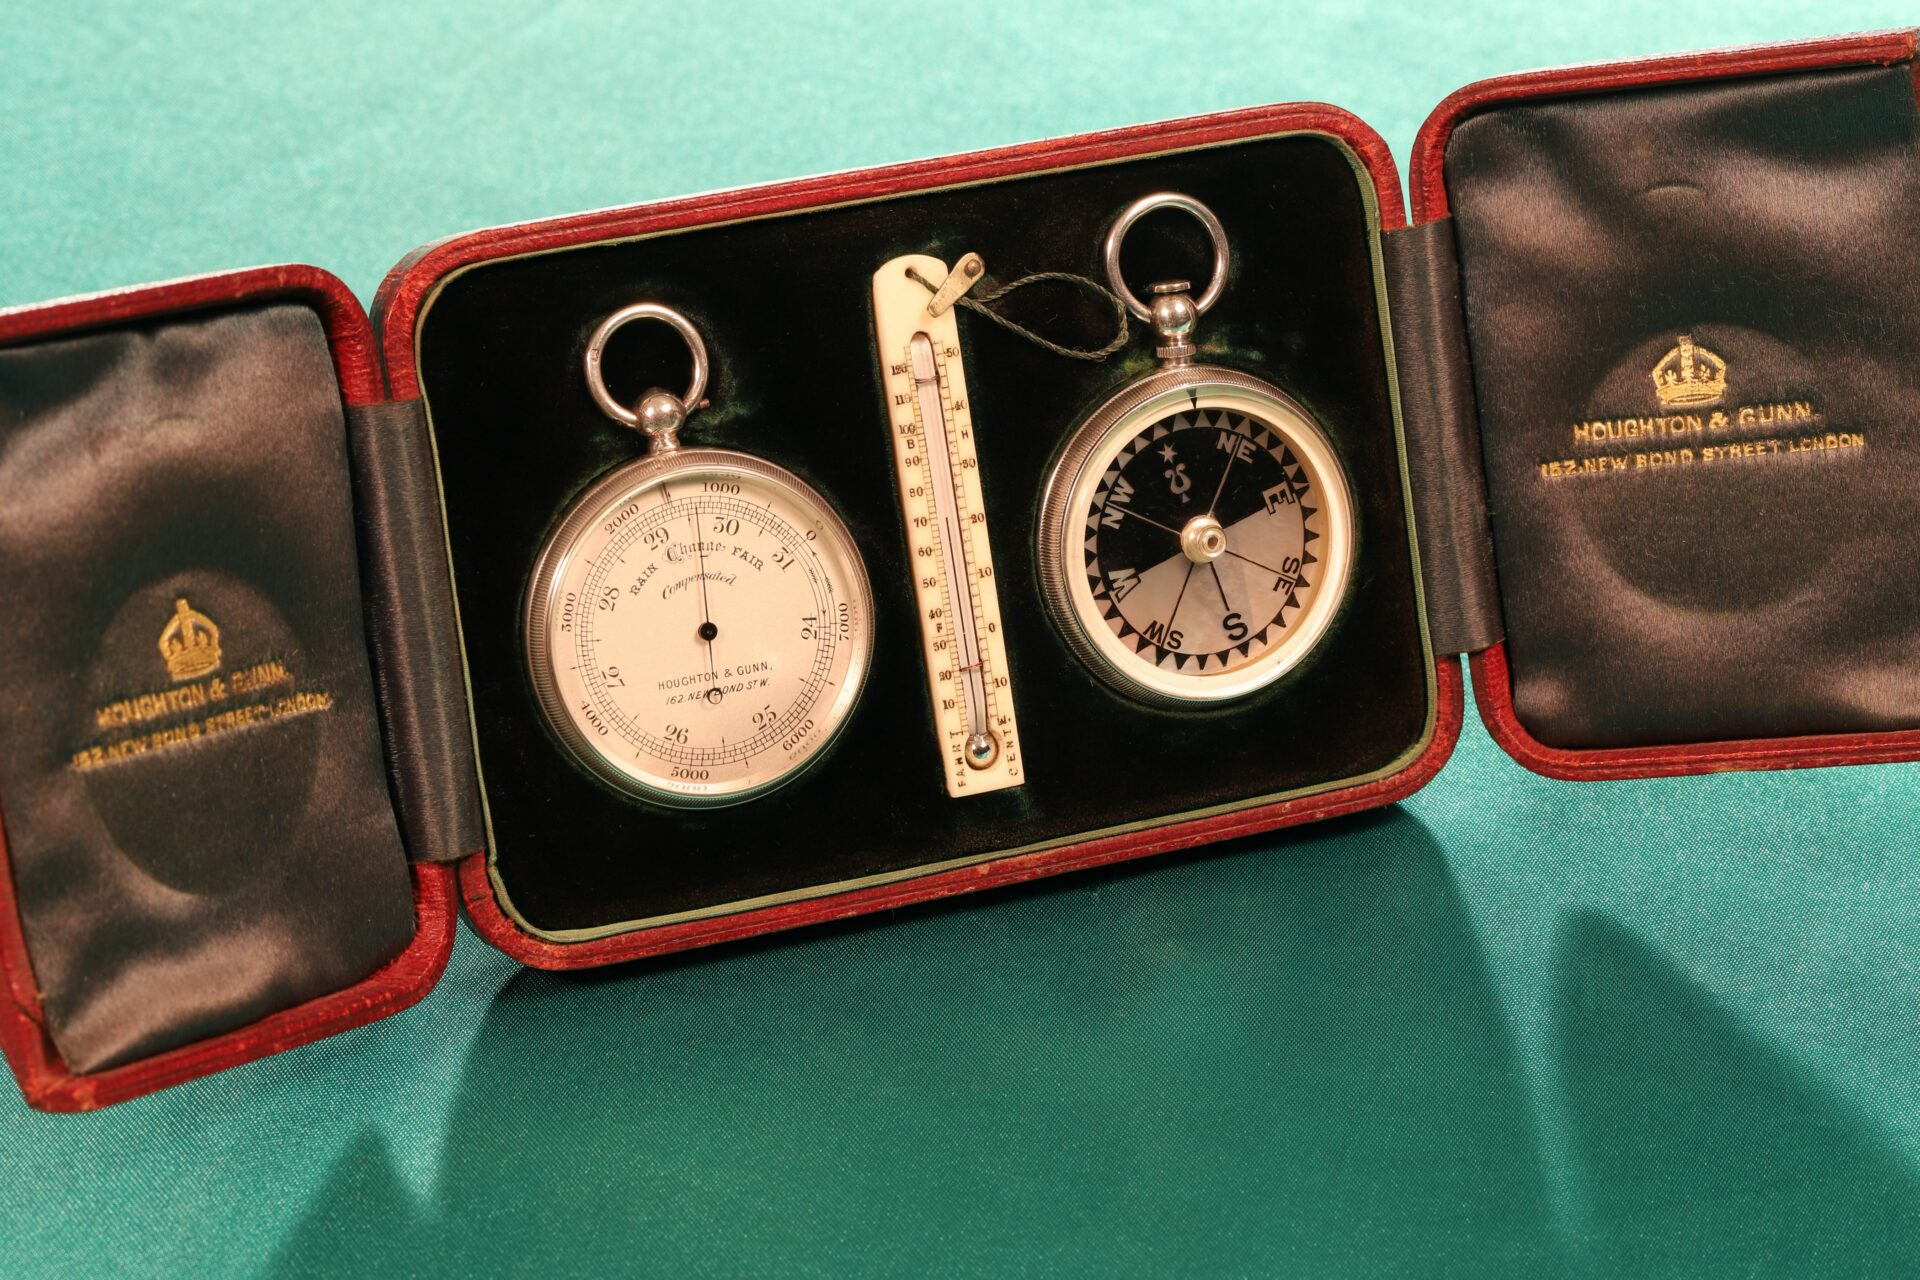 Image of the inside of Houghton & Gunn Silver Travel Compendium c1895 showing pocket barometer, thermometer and compass and the retailer's marks